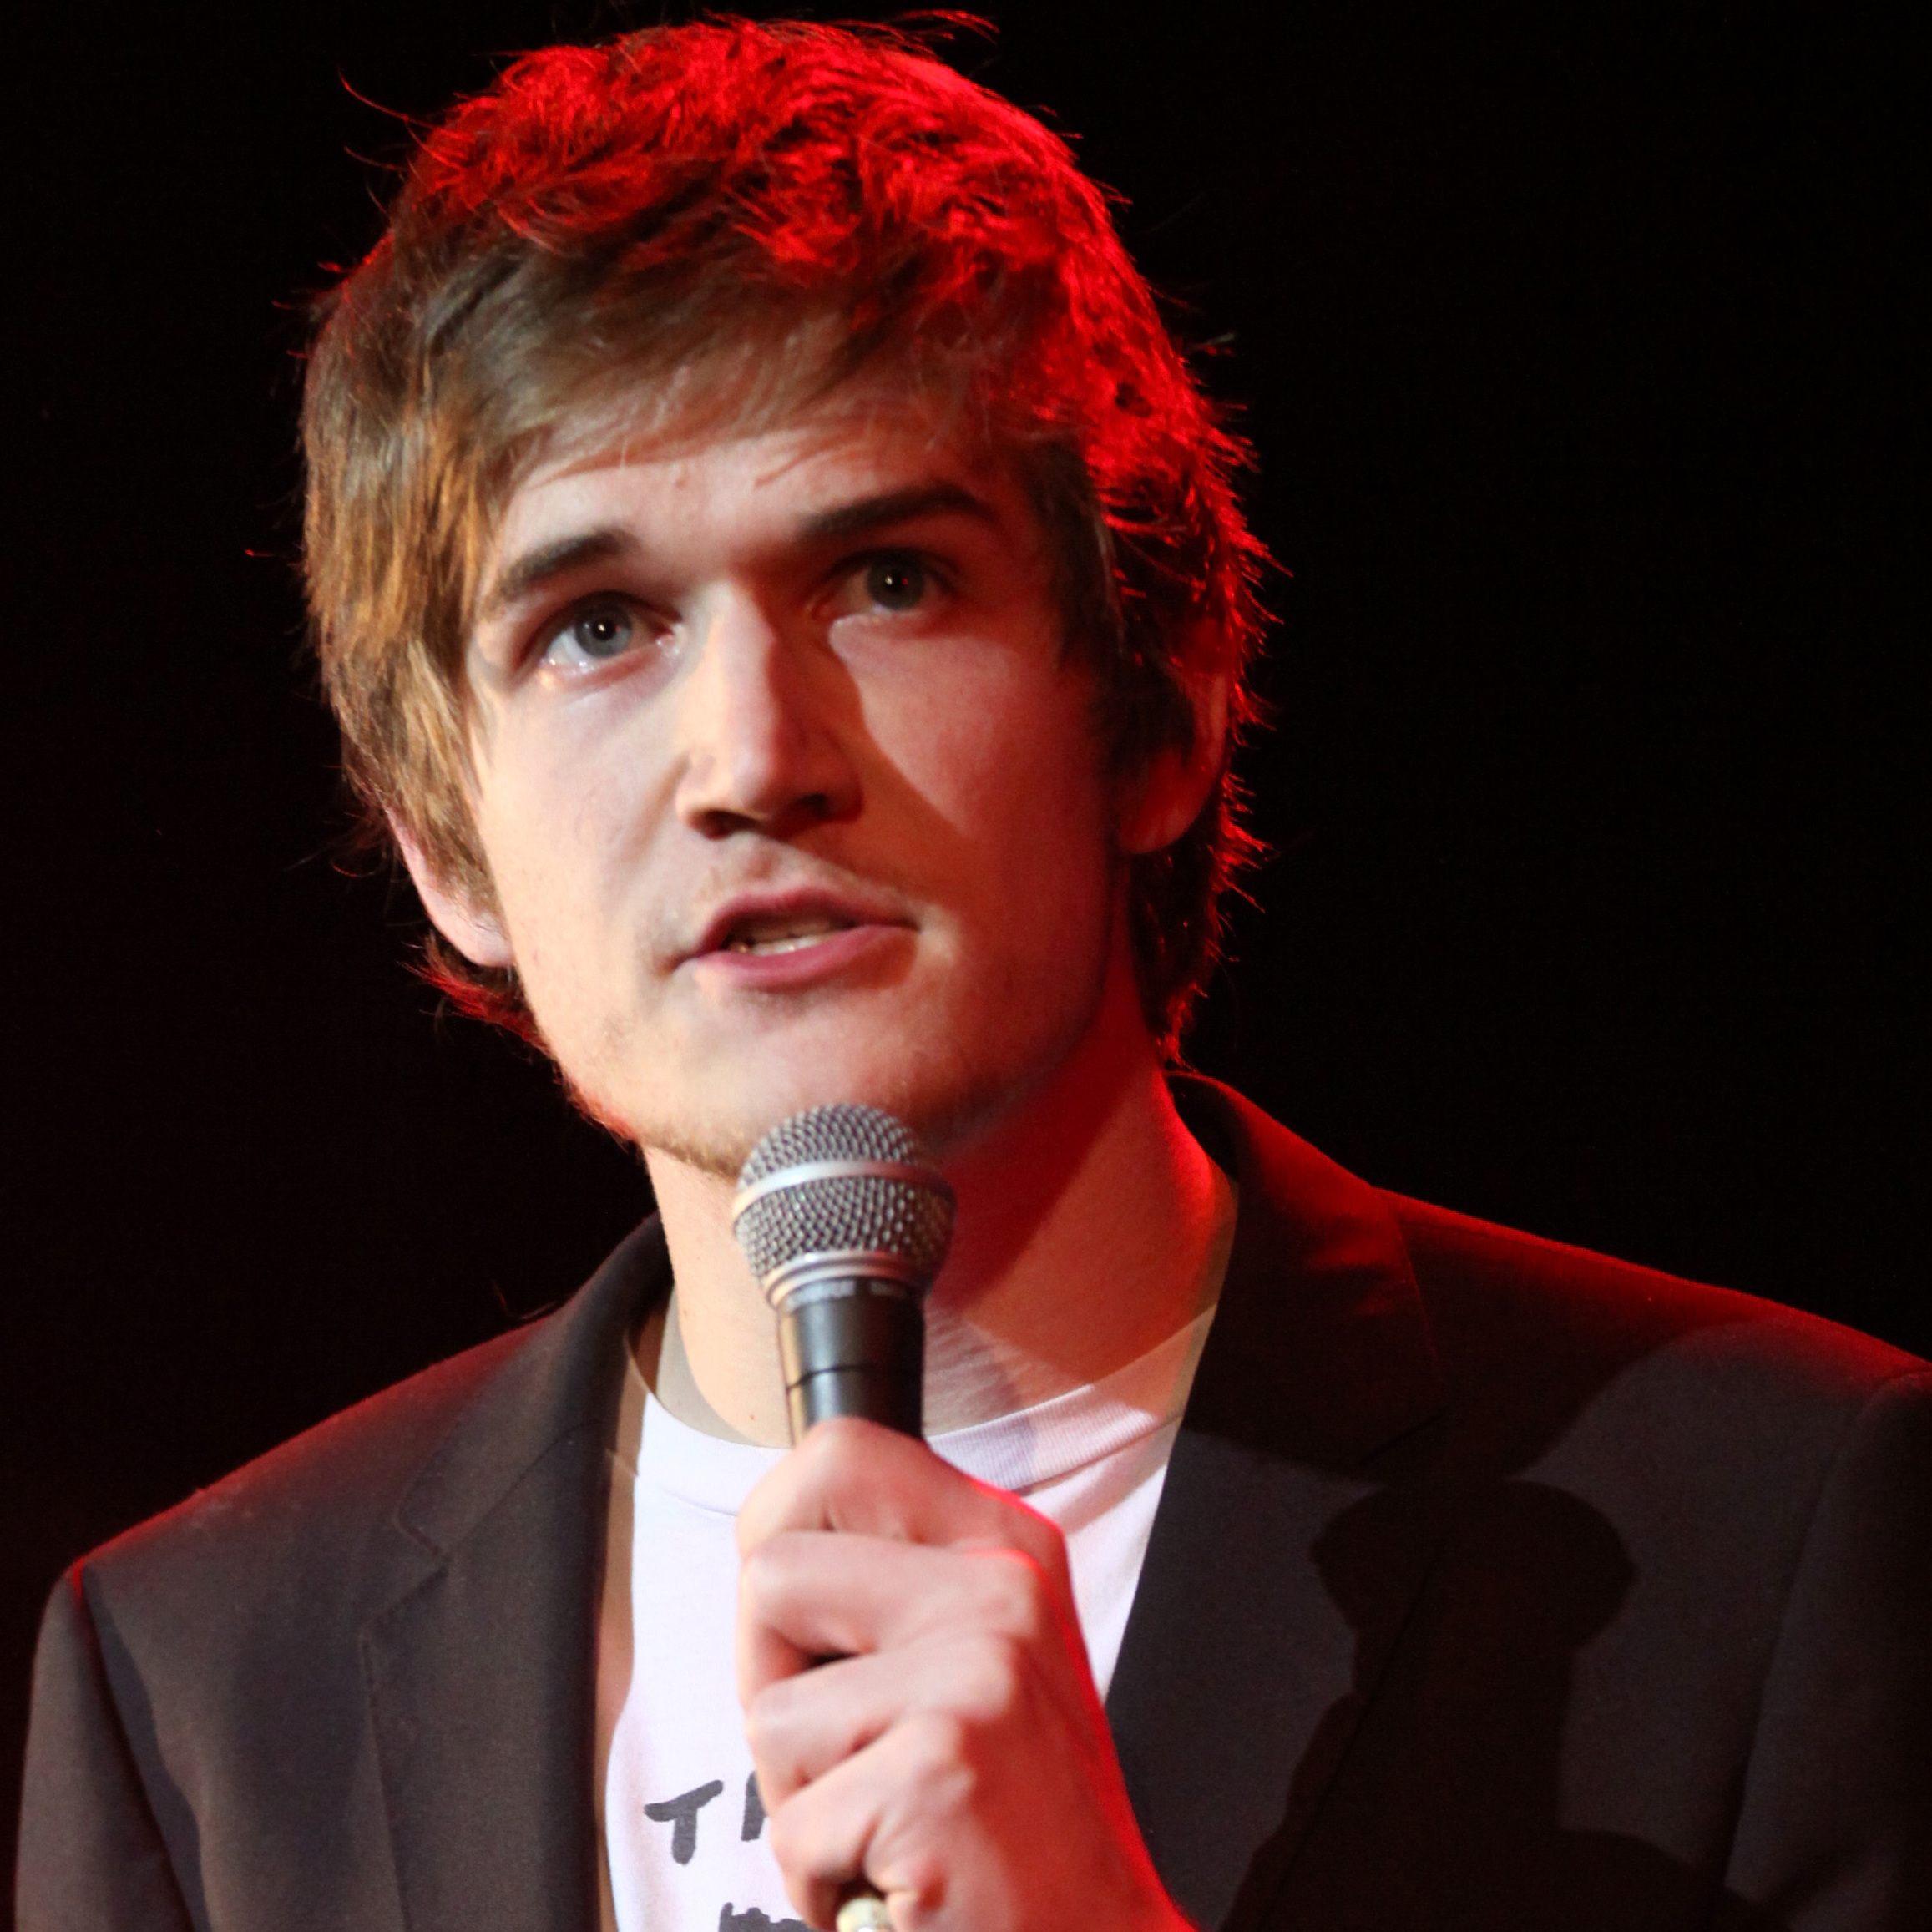 Fame found comedian Bo Burnham in 2010, when his satirical songs and videos went viral to the tune of 70 million views on YouTube.